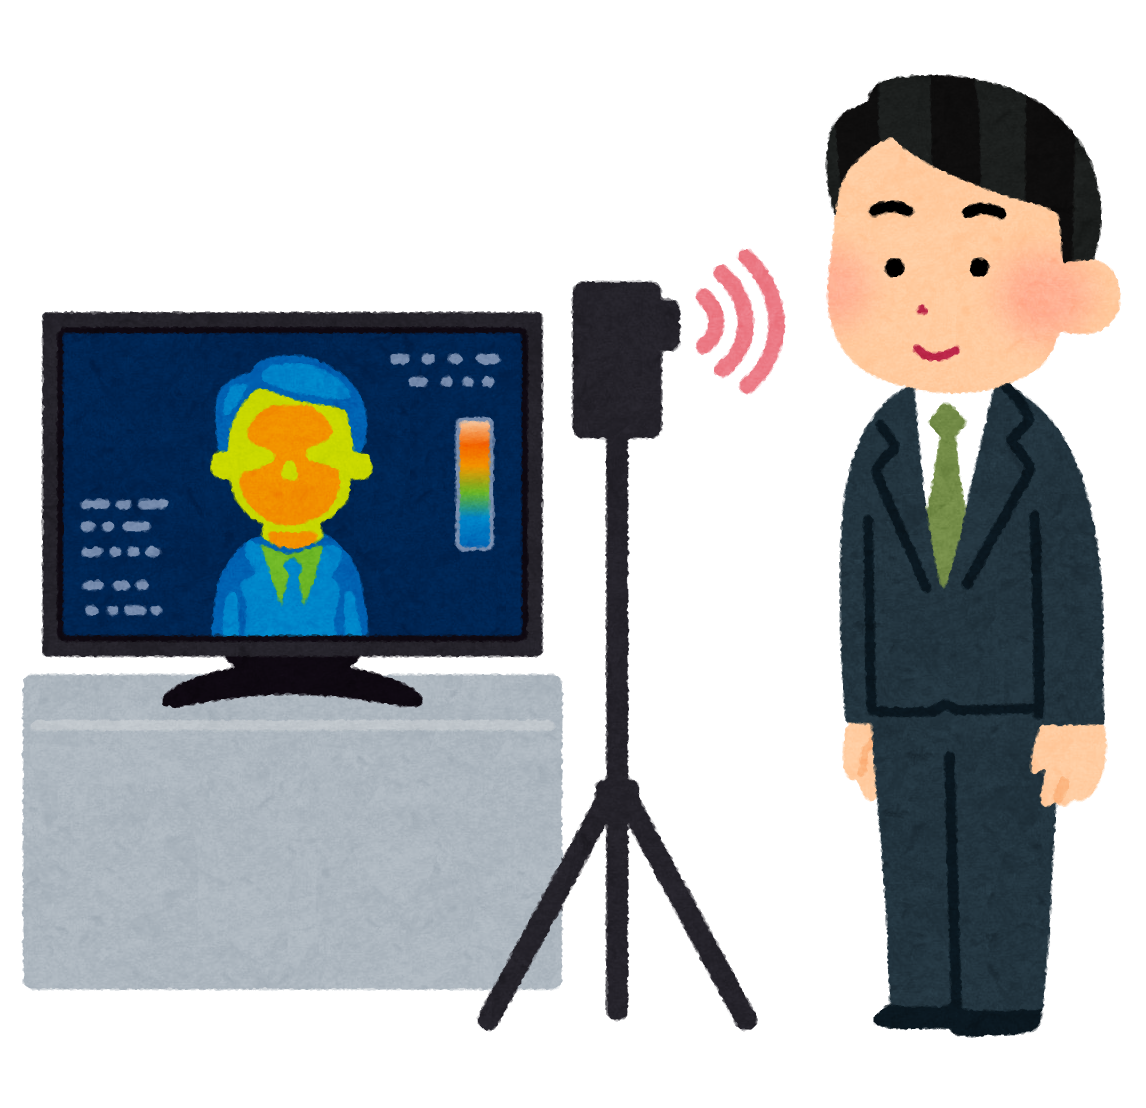 thermography_man_nomask.png (1146×1108)